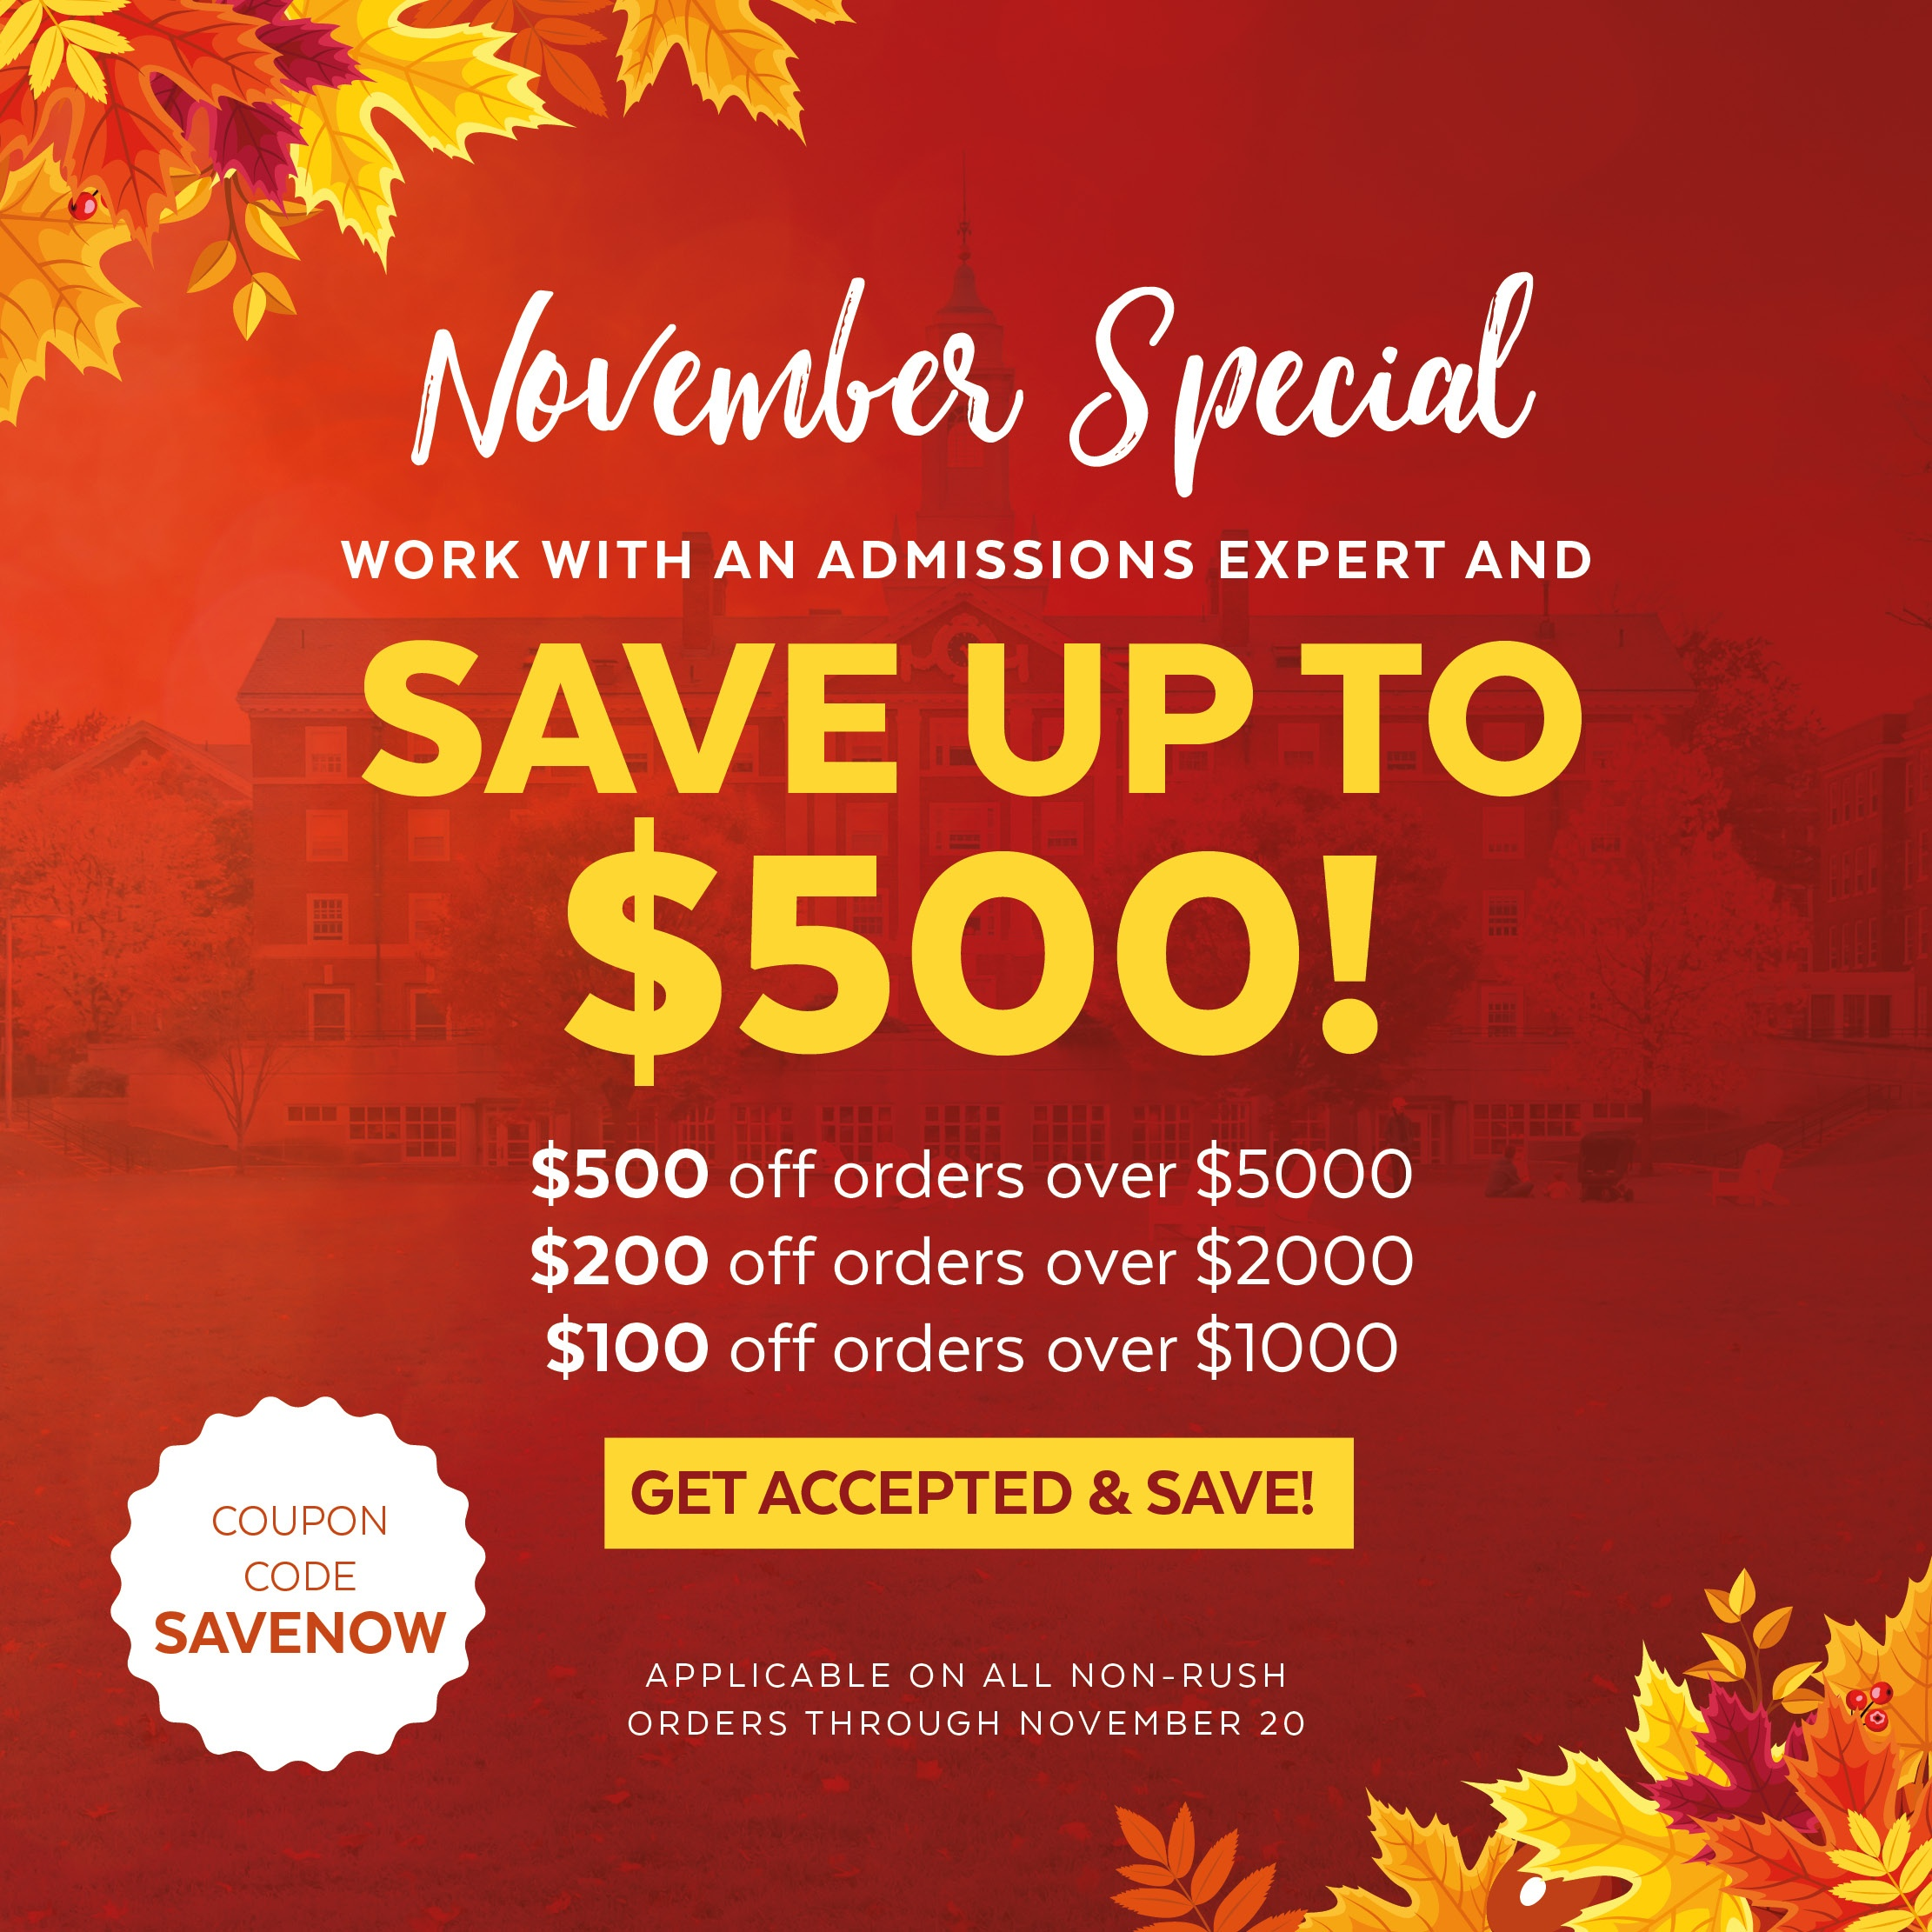 Save up to $500 on MBA admissions services! Shop now >>